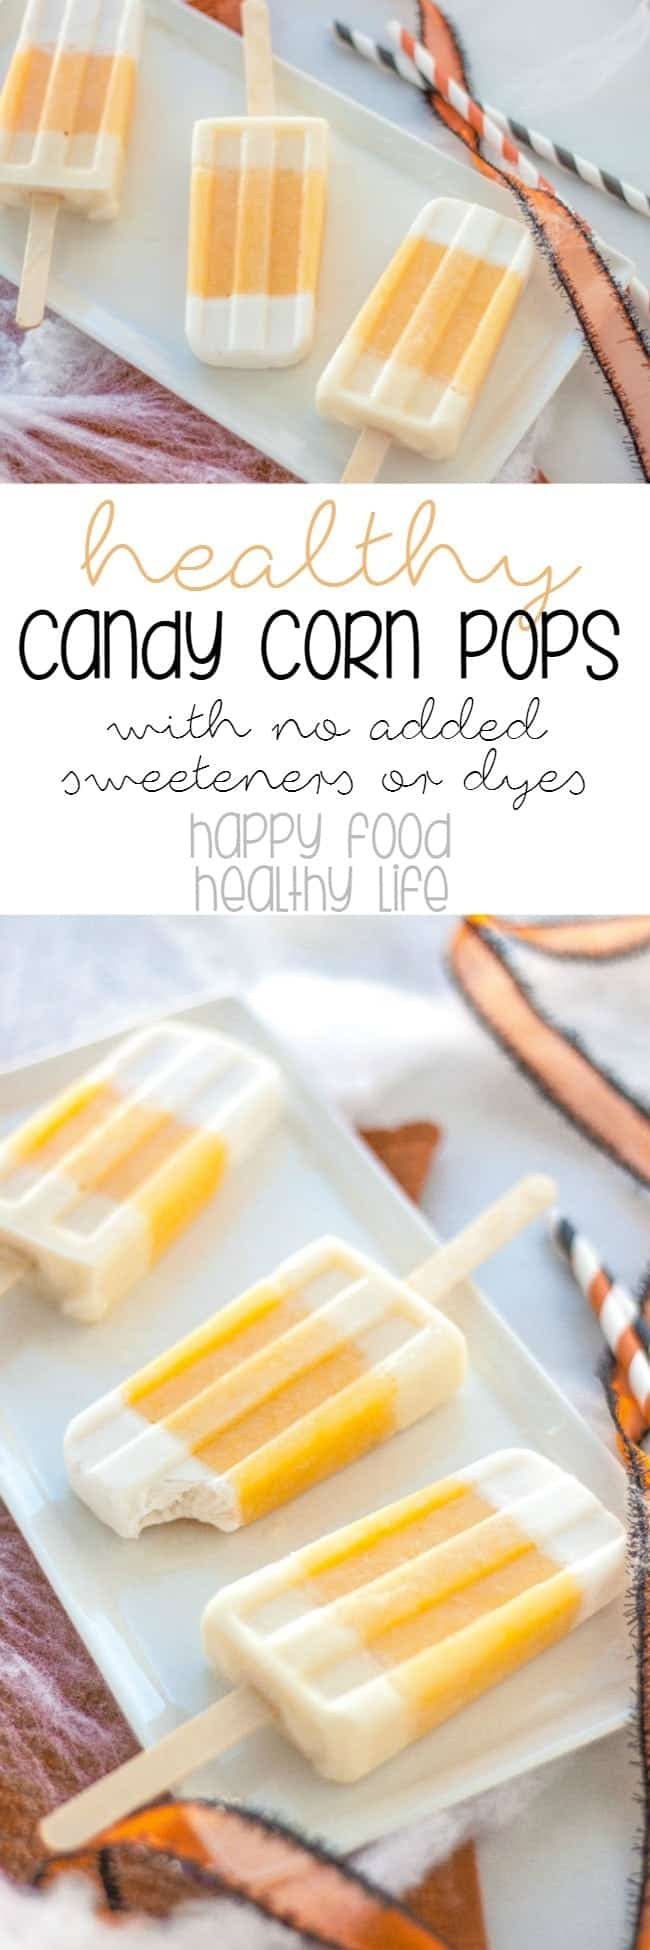 Healthy Candy Corn Frozen Fruit Pops - A dye-free, sugar-free alternative to those nasty halloween candies! These healthy popsicles are sure to satisfy your kid's (or YOUR) sweet tooth!